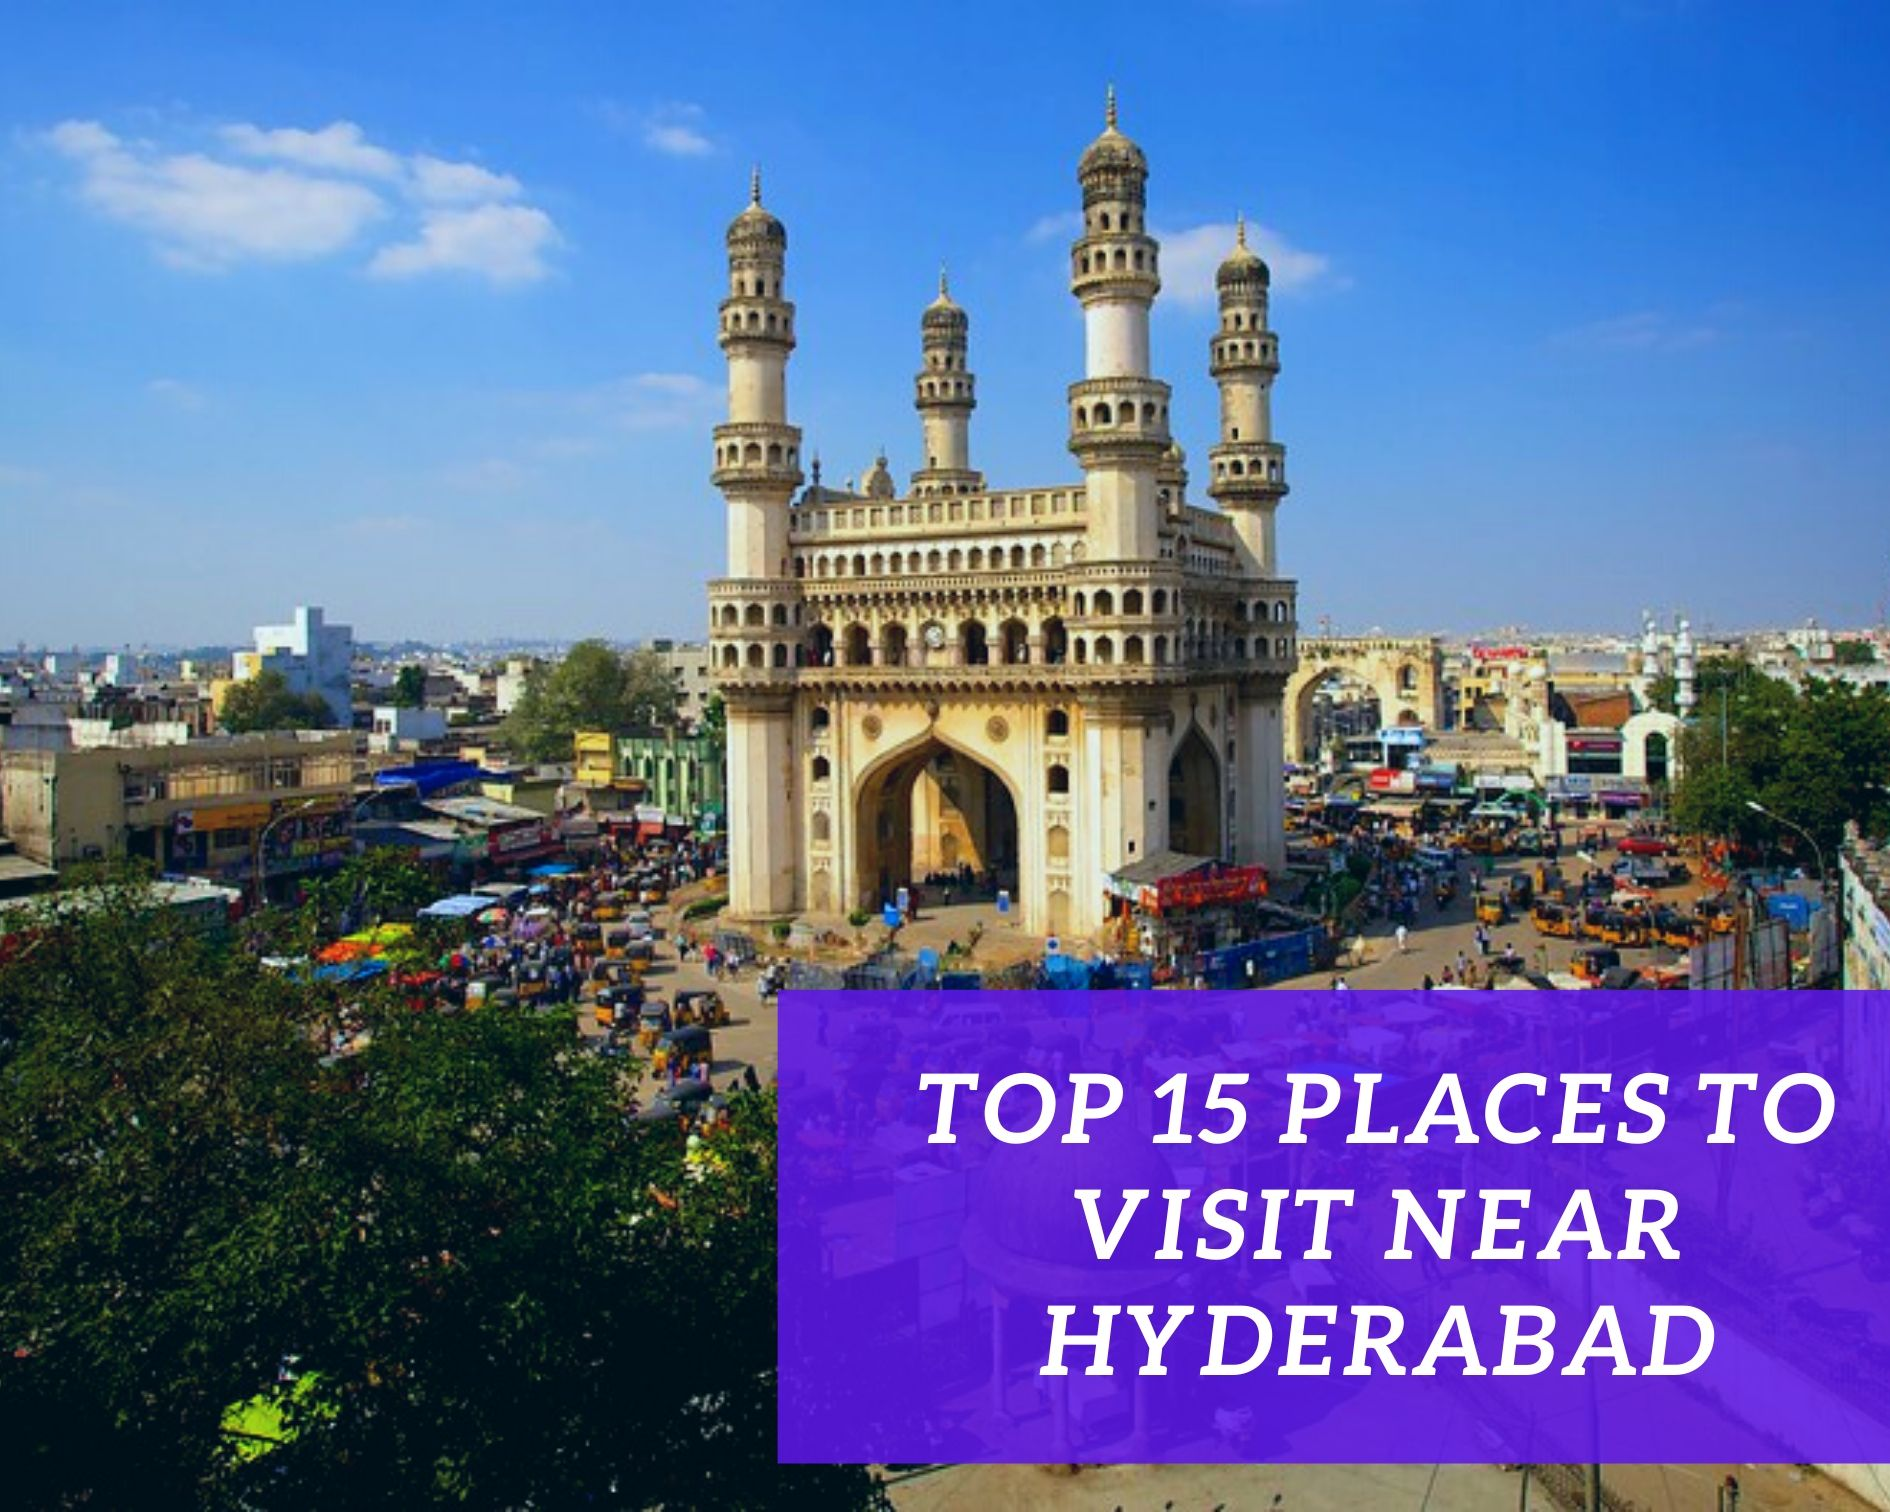 Top 15 Places to visit near Hyderabad